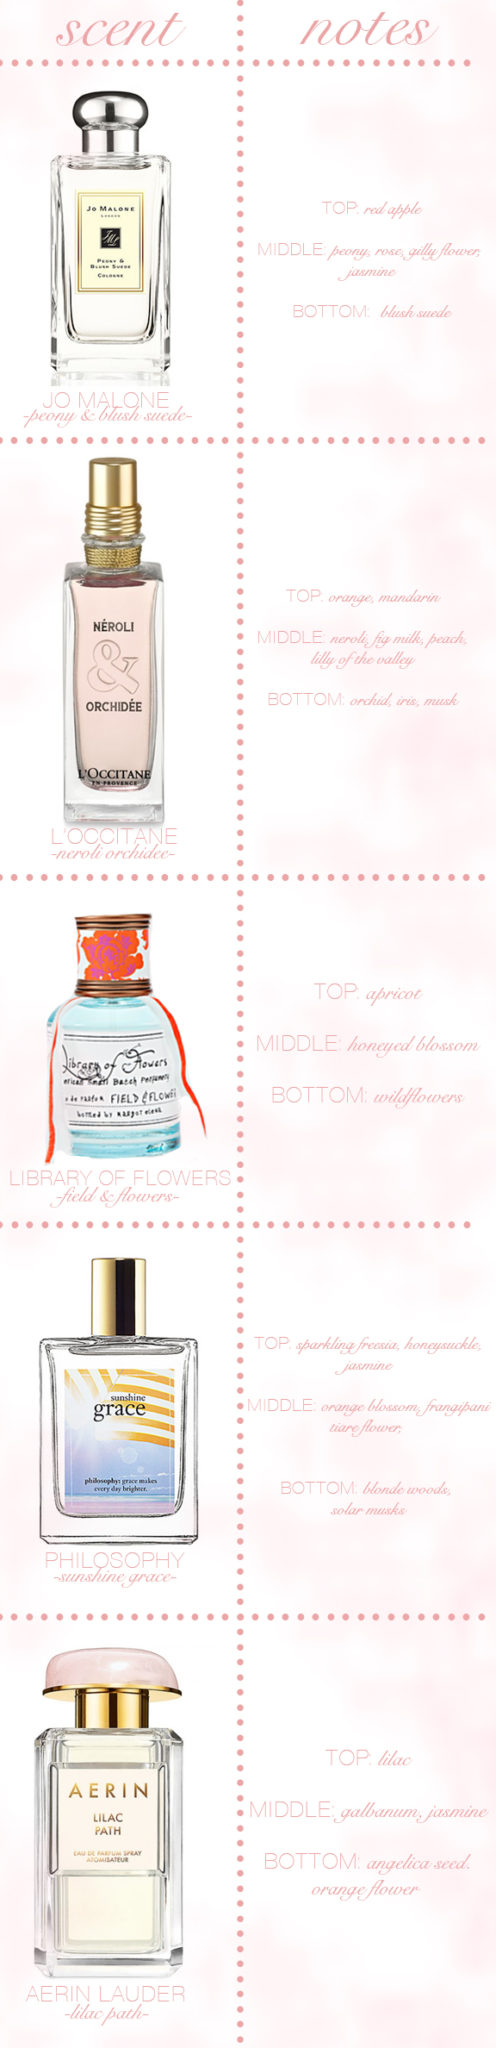 summertime_scents2